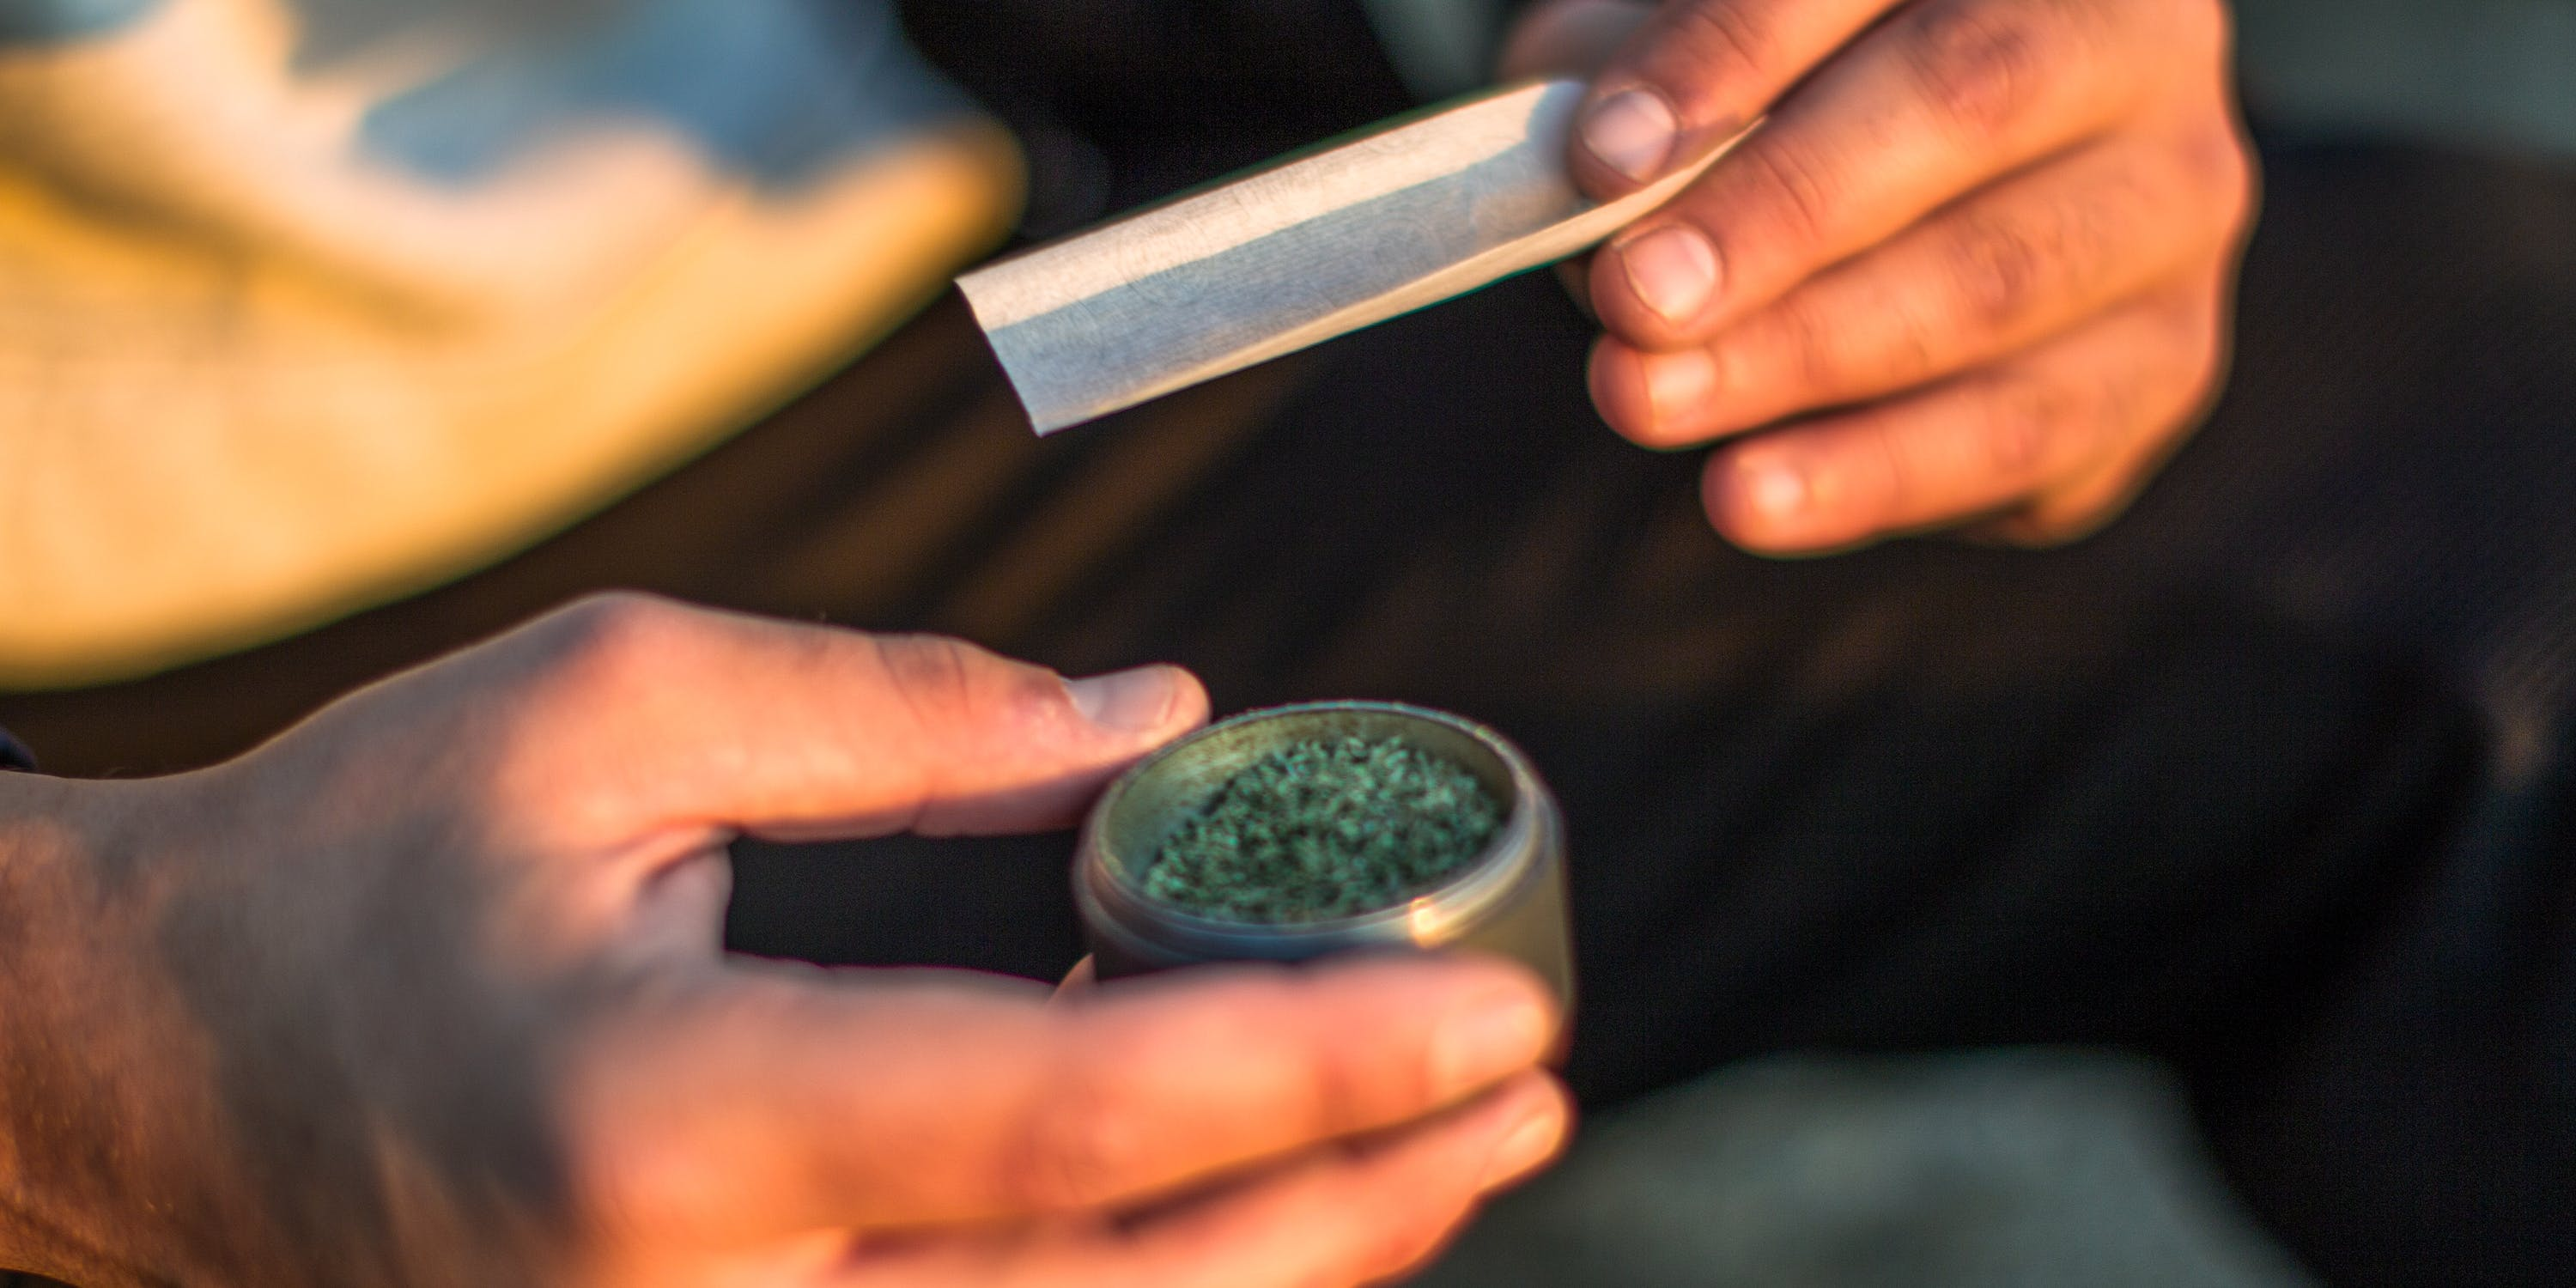 Find out how the best weed grinders can elevate youFind out how the best weed grinders can elevate your smoke sessions r smoke sessions